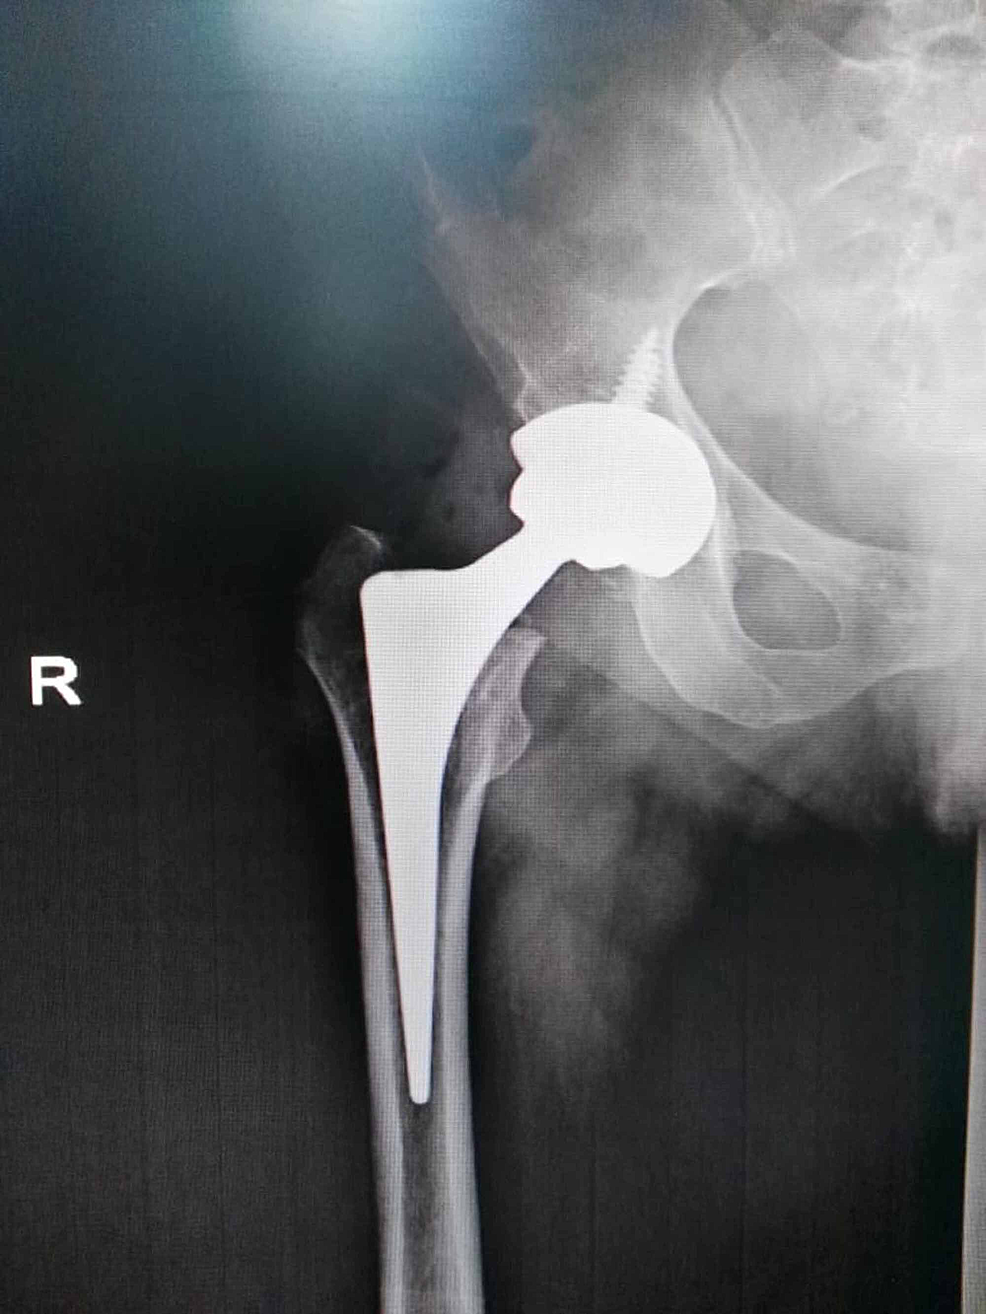 Total-hip-arthroplasty-using-a-cementless-(Zimmer)-prosthesis-and-fixated-via-cannulated-screws.